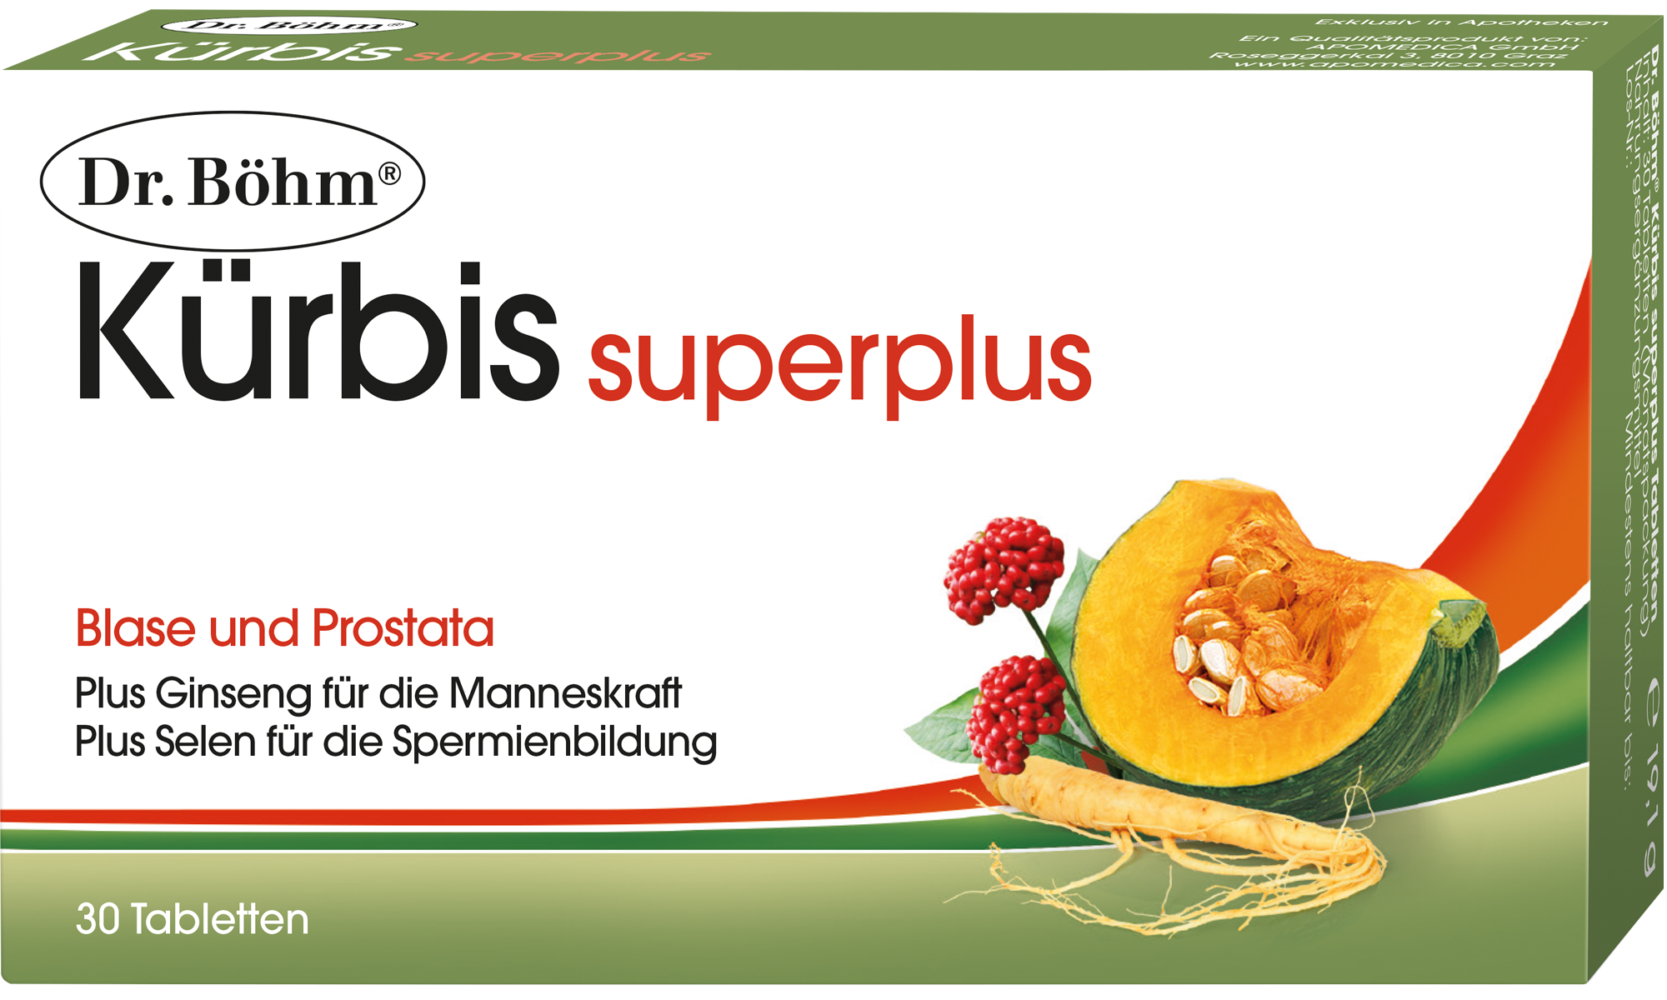 Dr. Böhm® Kürbis superplus Tabletten